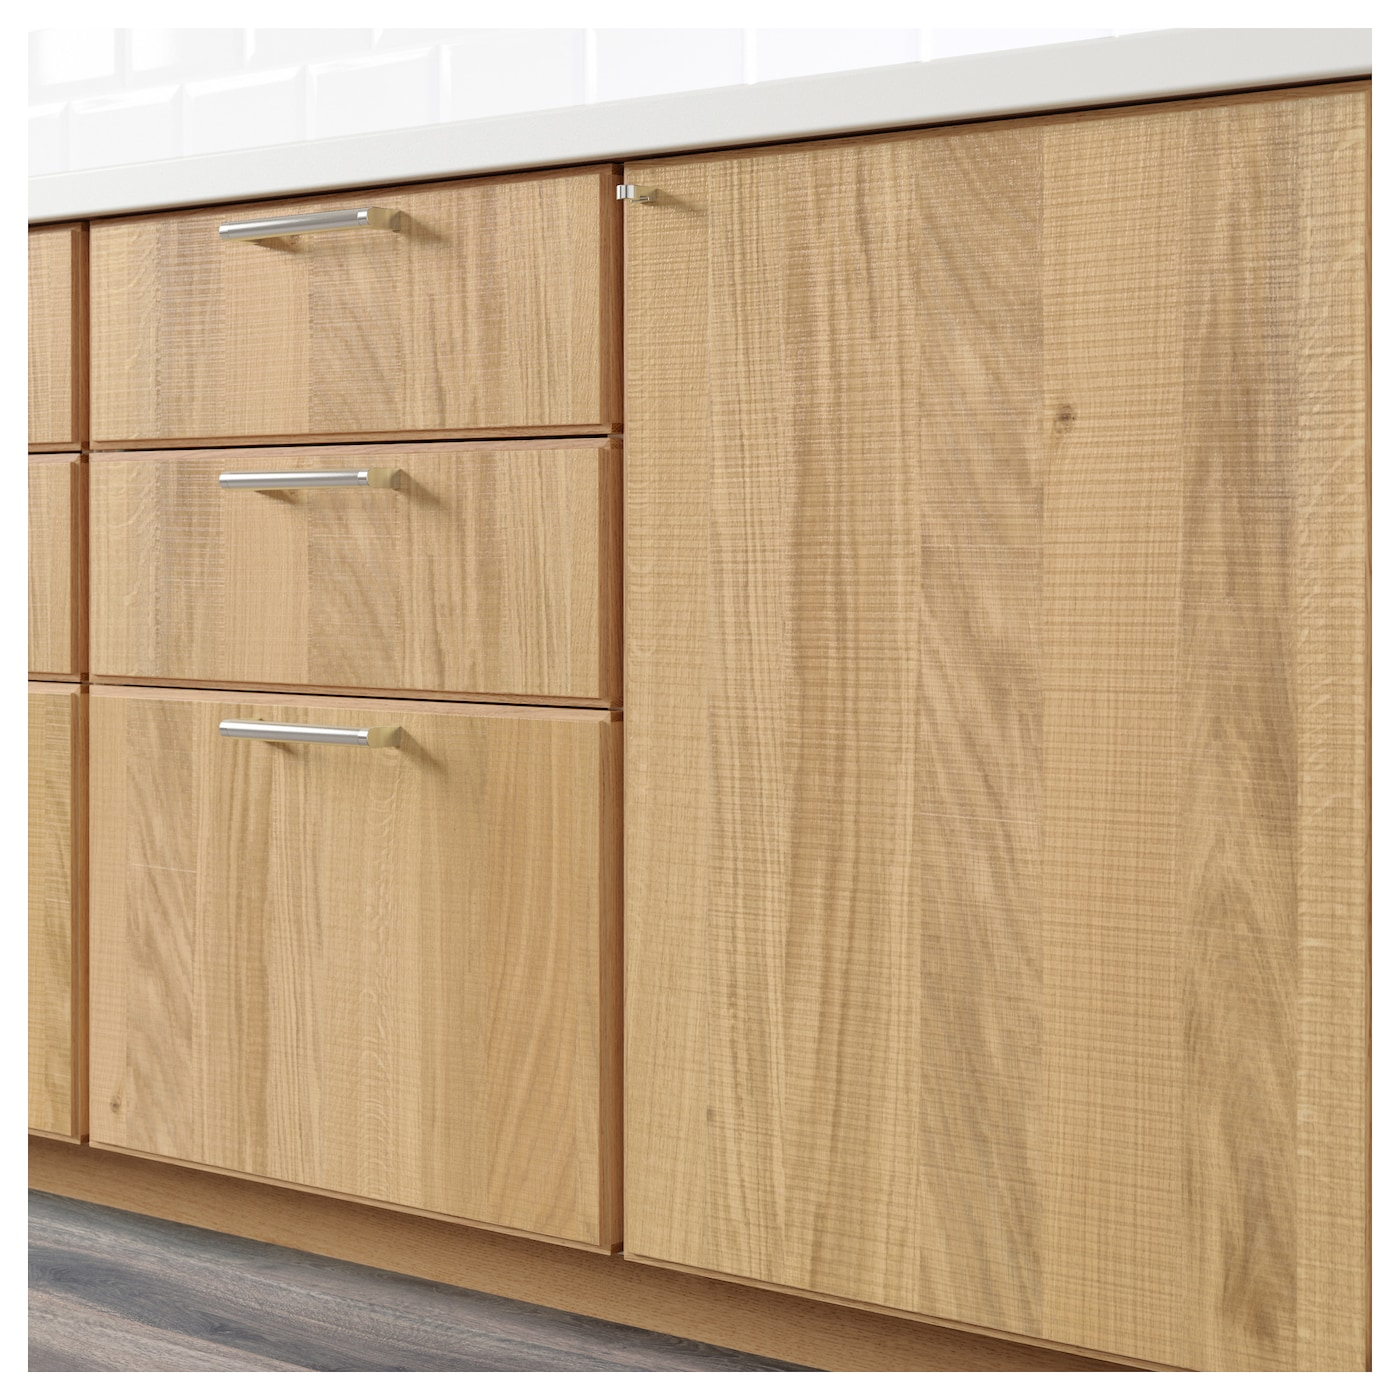 IKEA HYTTAN door The solid wood frame adds stability and makes the door durable and long lasting.